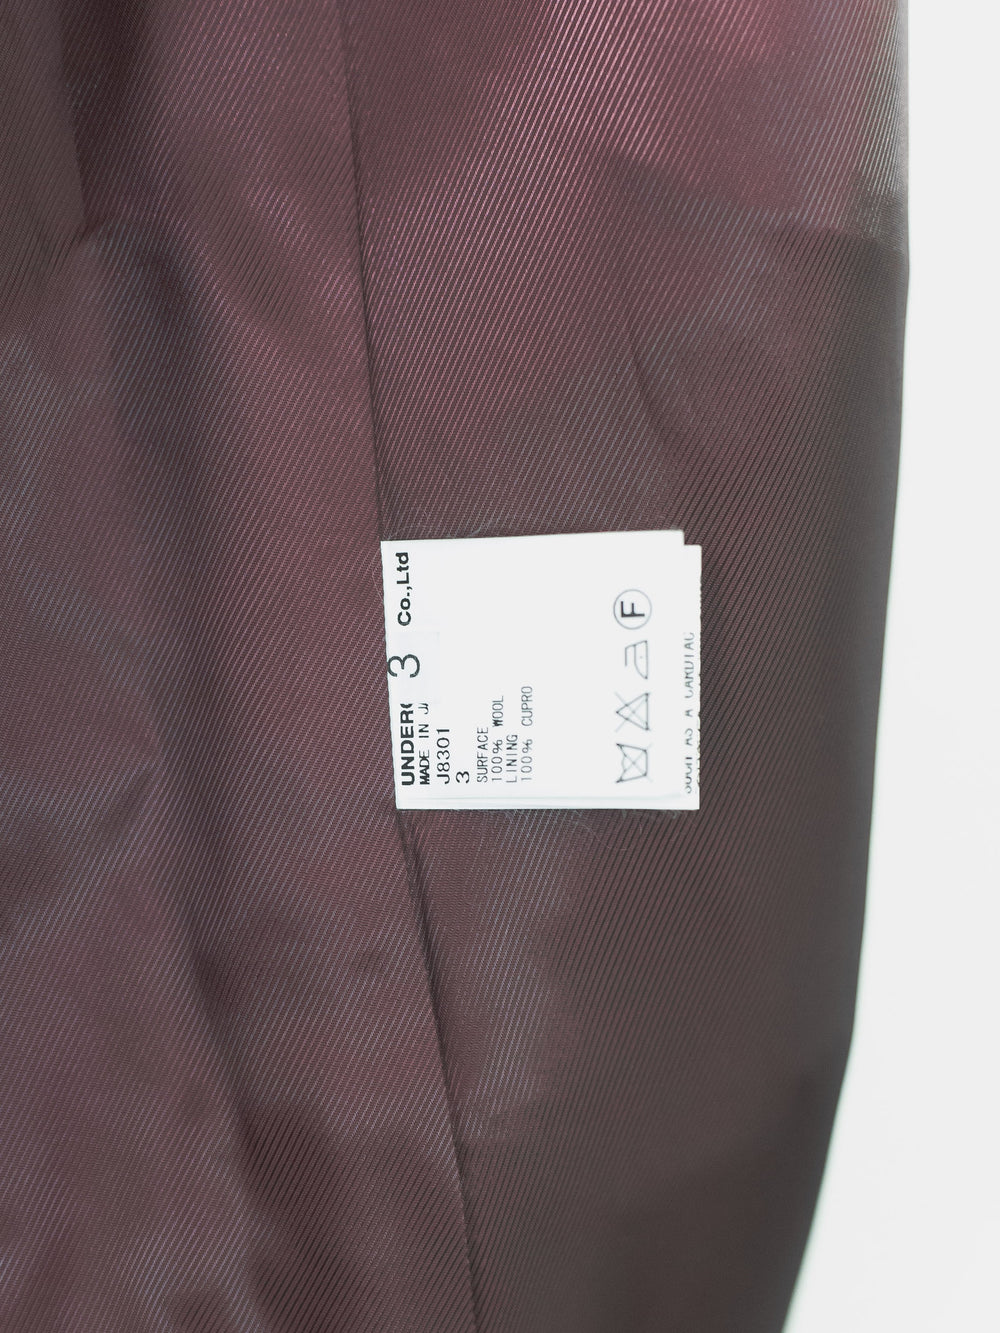 Undercover AW12 Psychocolor Chester Coat